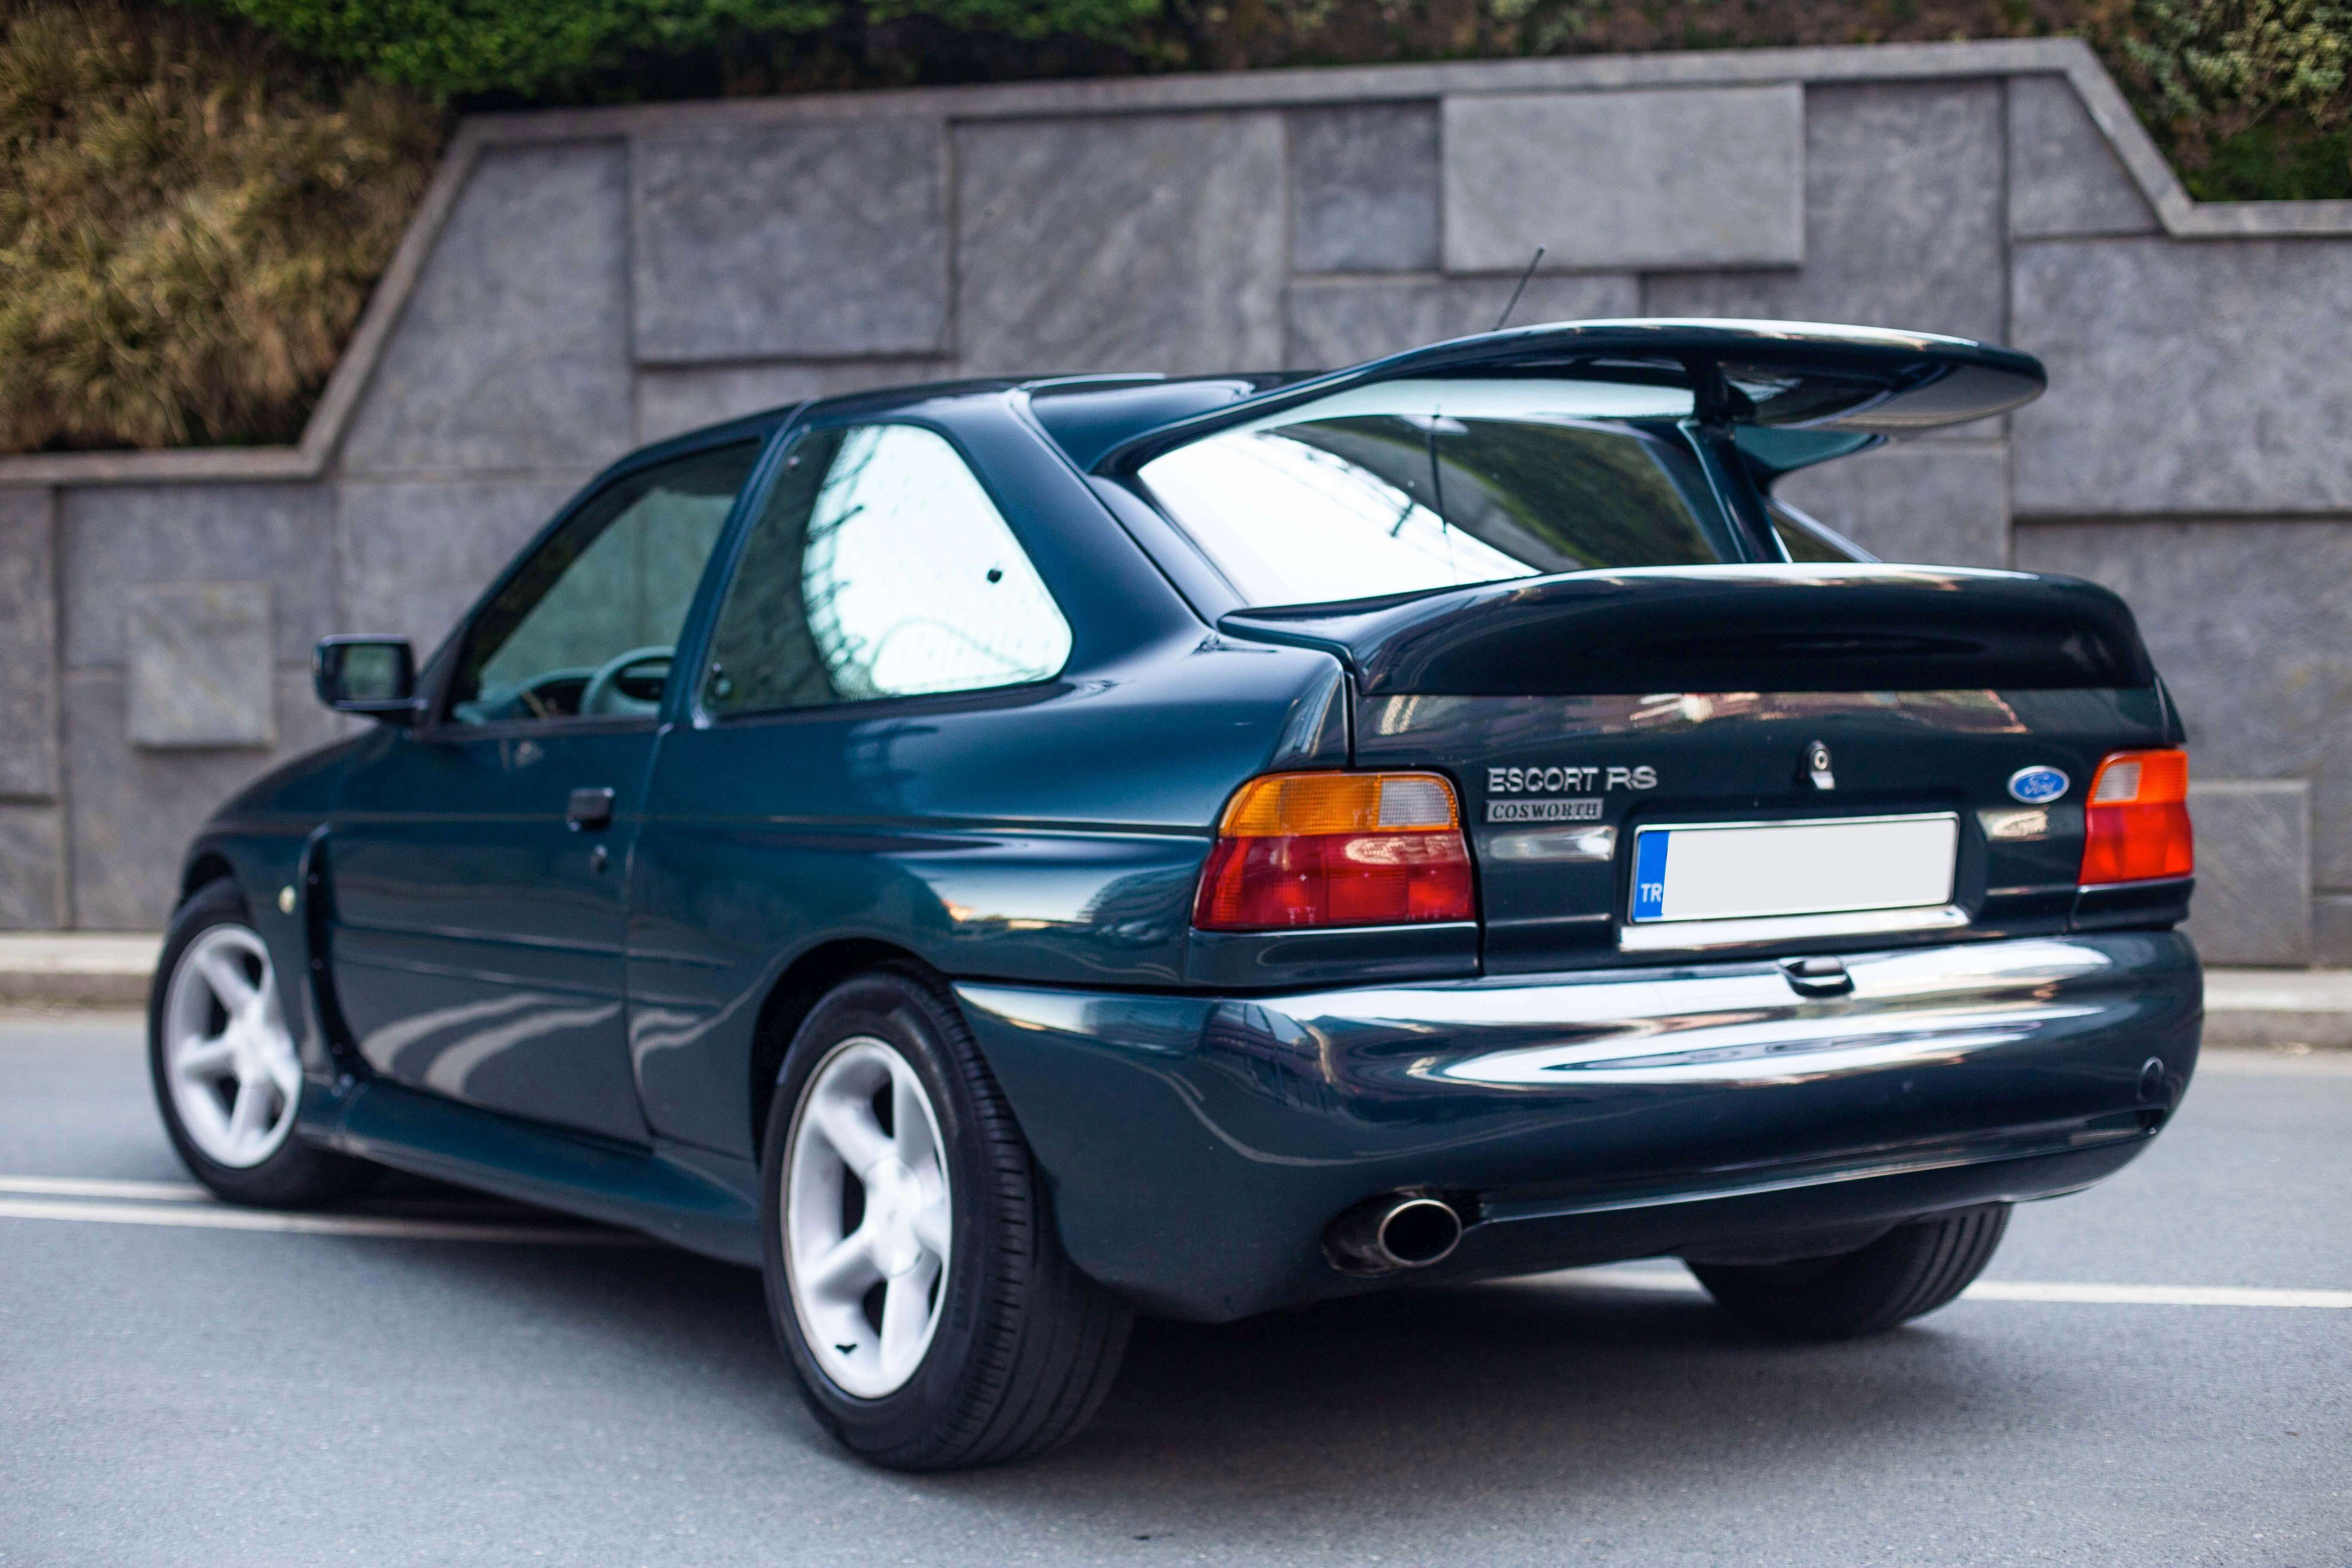 1993 Ford Escort RS Cosworth